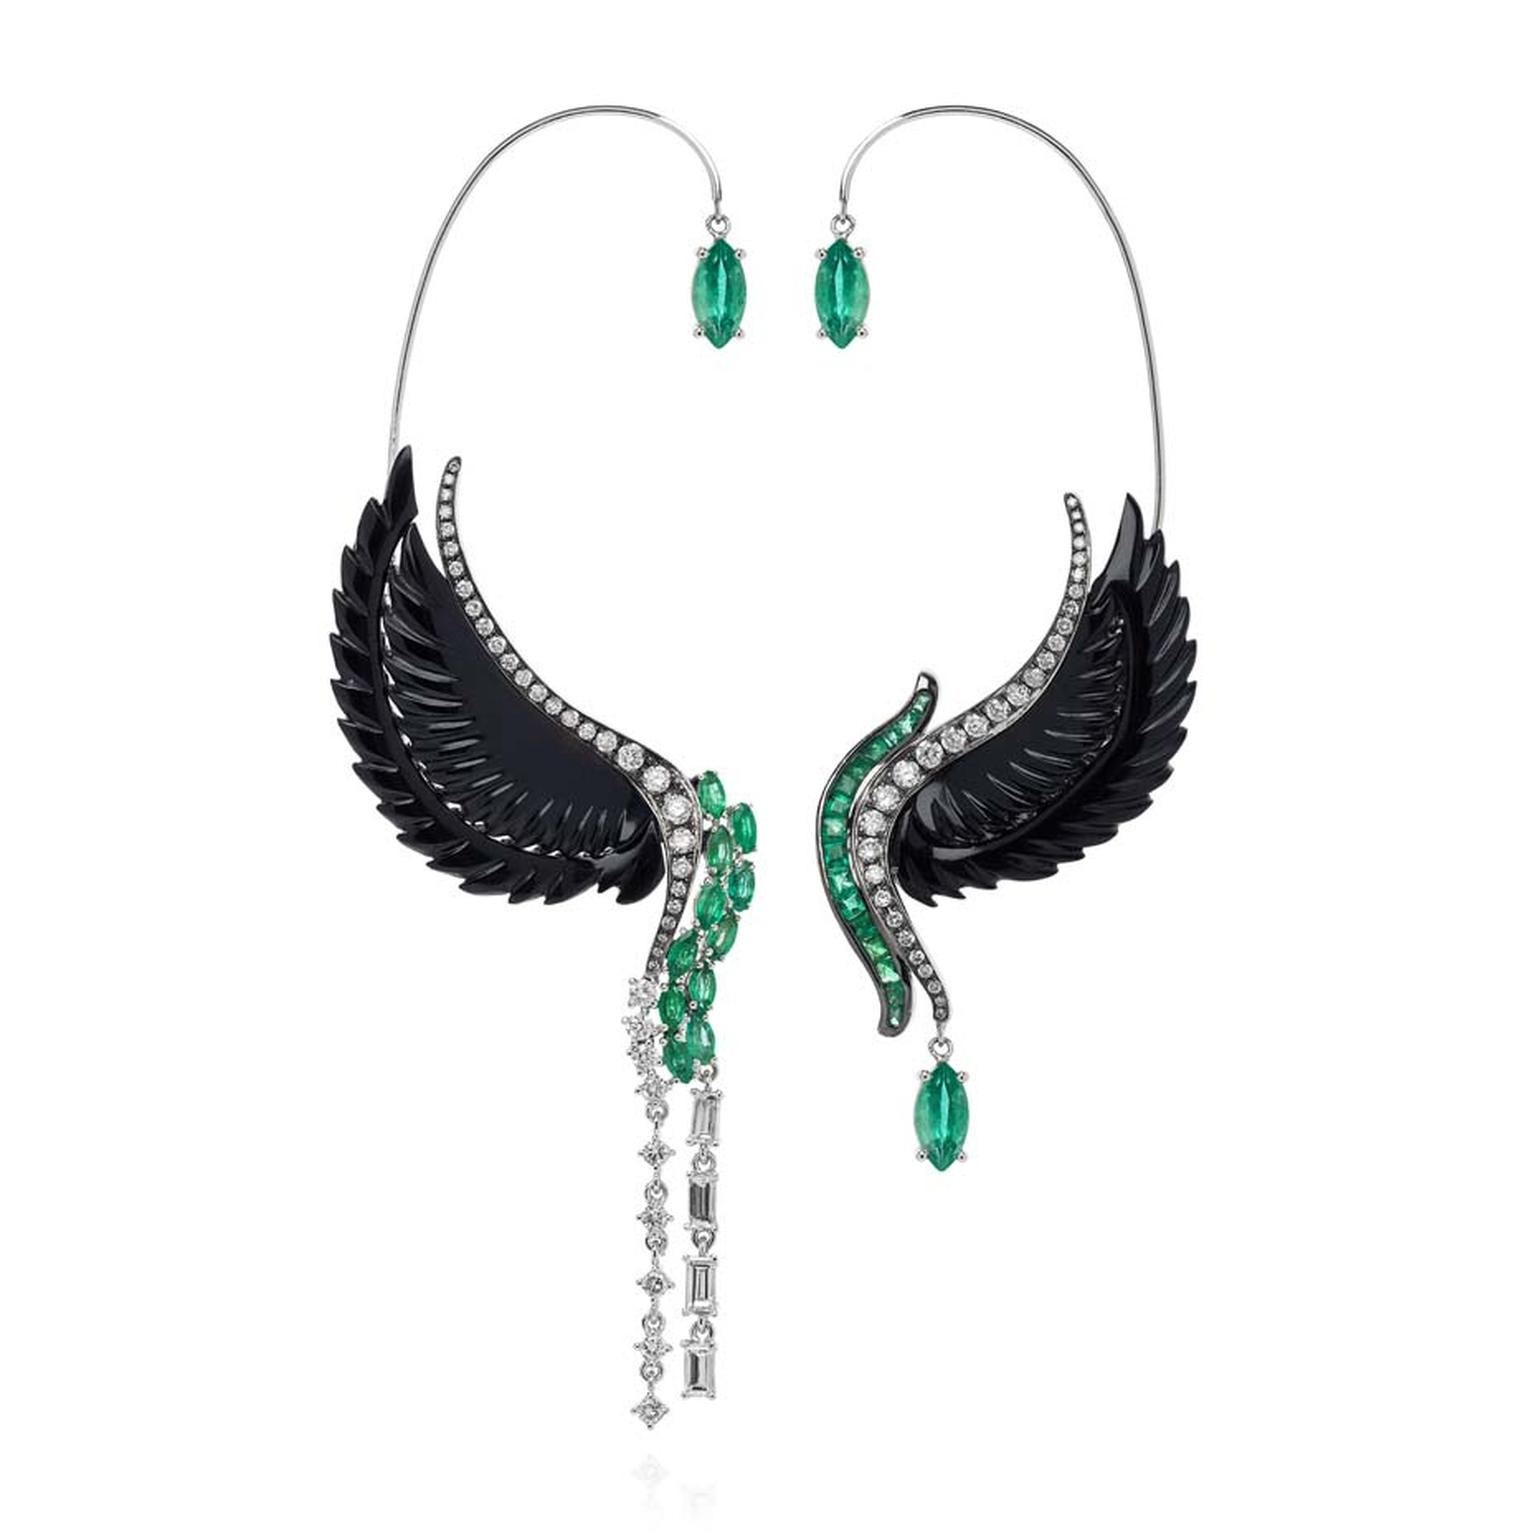 Leyla Abdollahi Lust & Lure collection ear cuffs in white gold with diamonds, emeralds and onyx